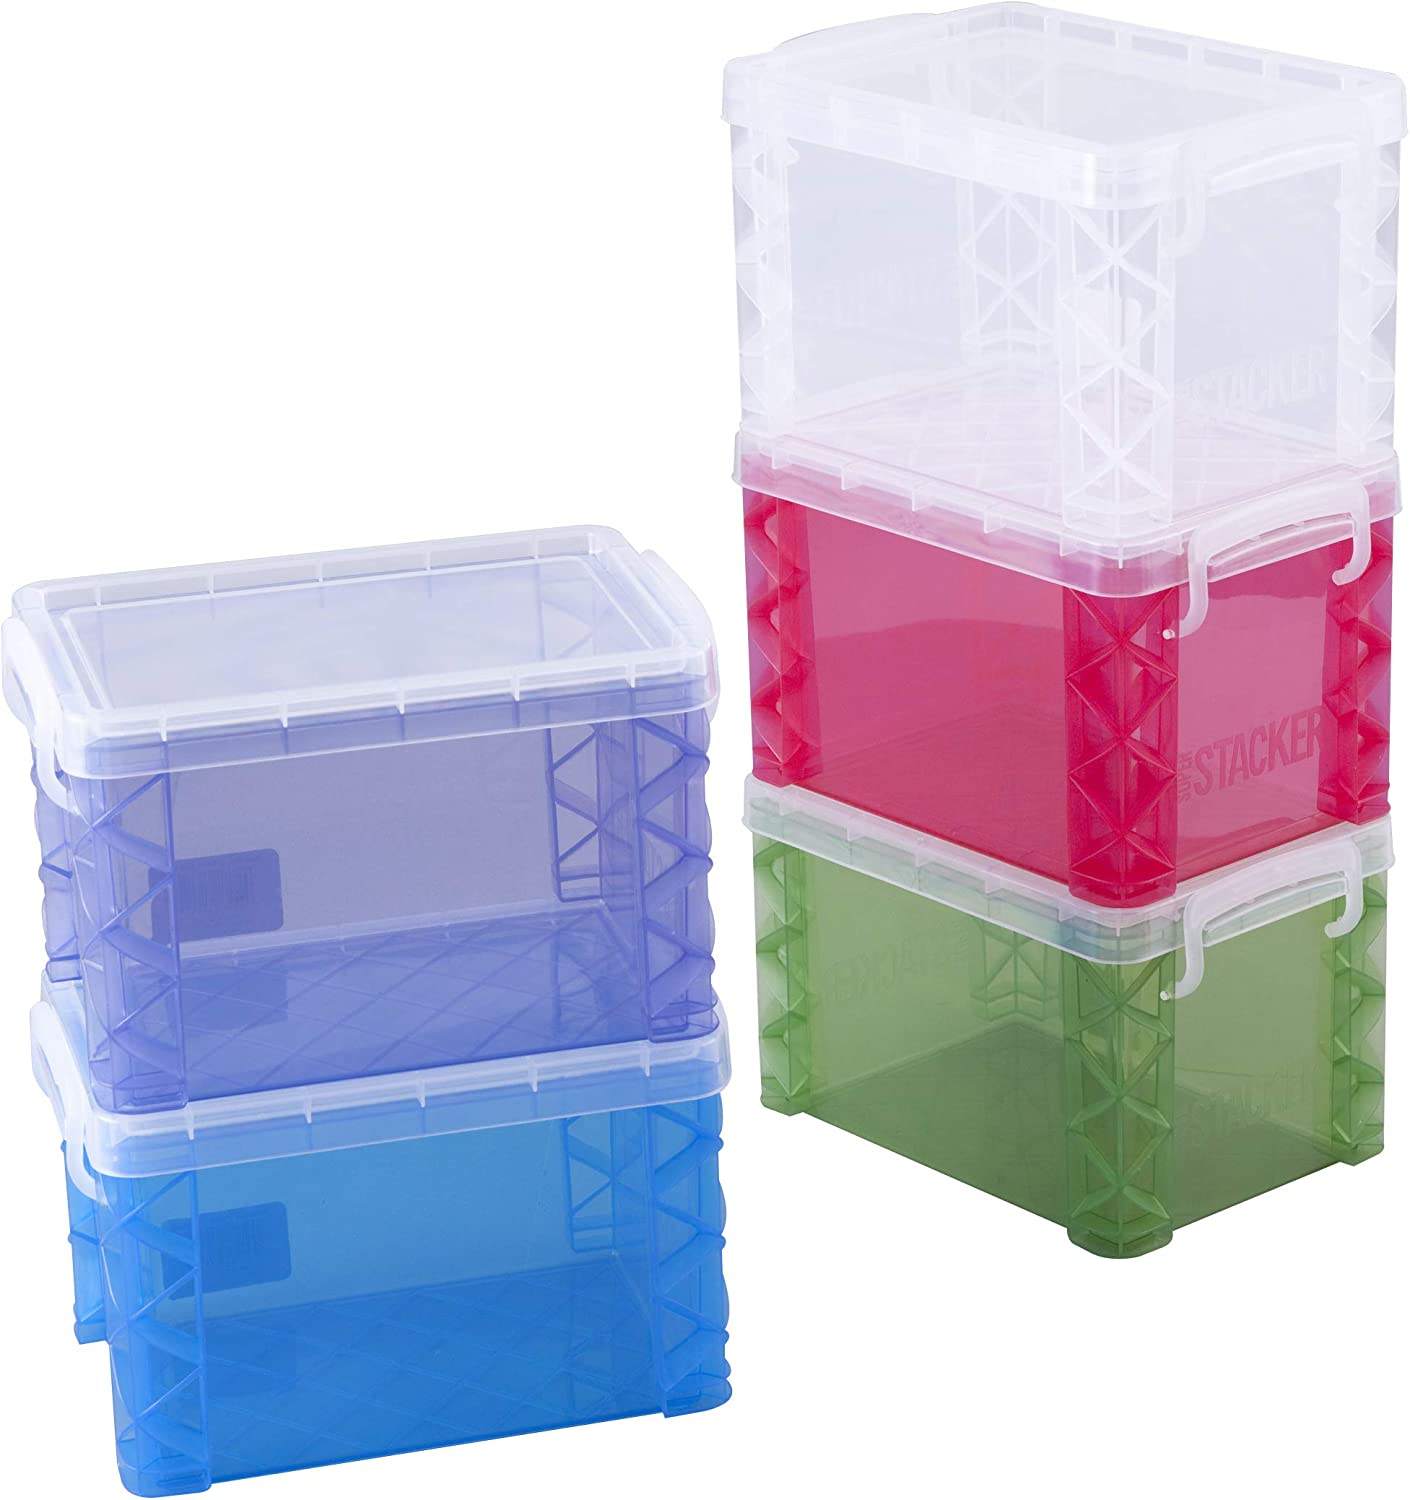 Super Stacker 4 x 6 Inch Index Card Box, Assorted Colors, 1 Box (61614) 71kzGEcsgkL